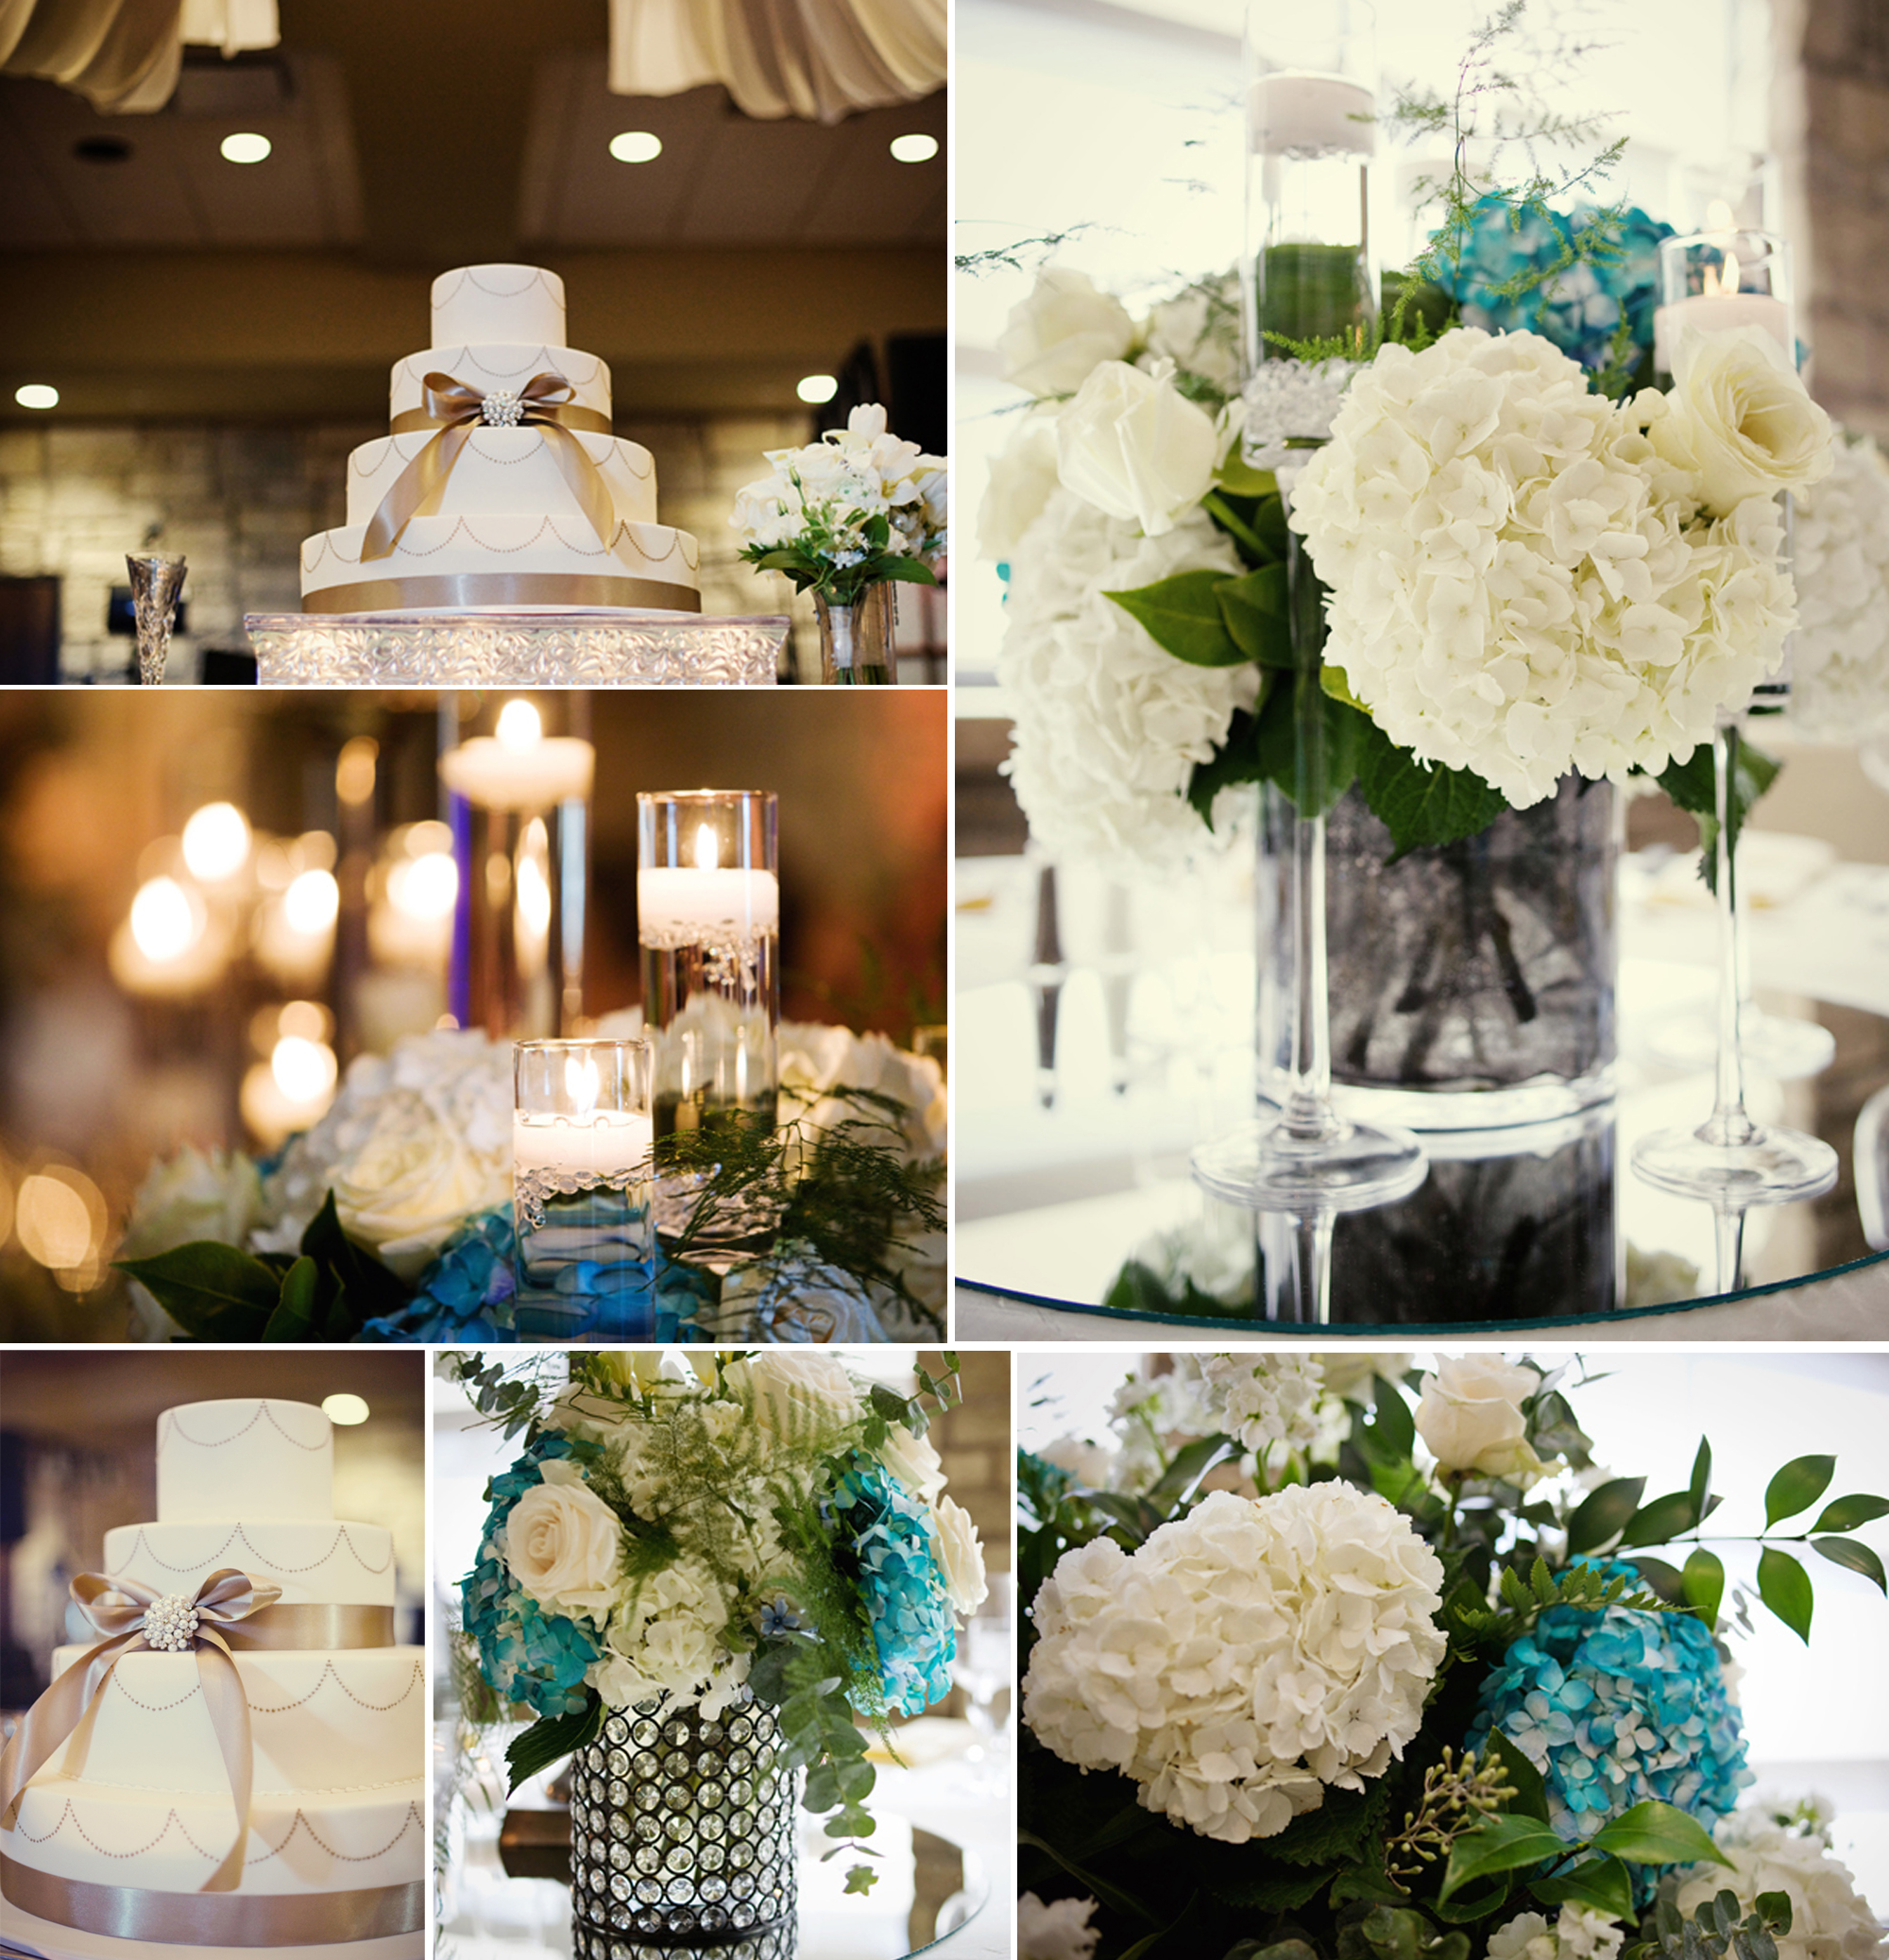 Elegant Wedding: Reception Centerpieces